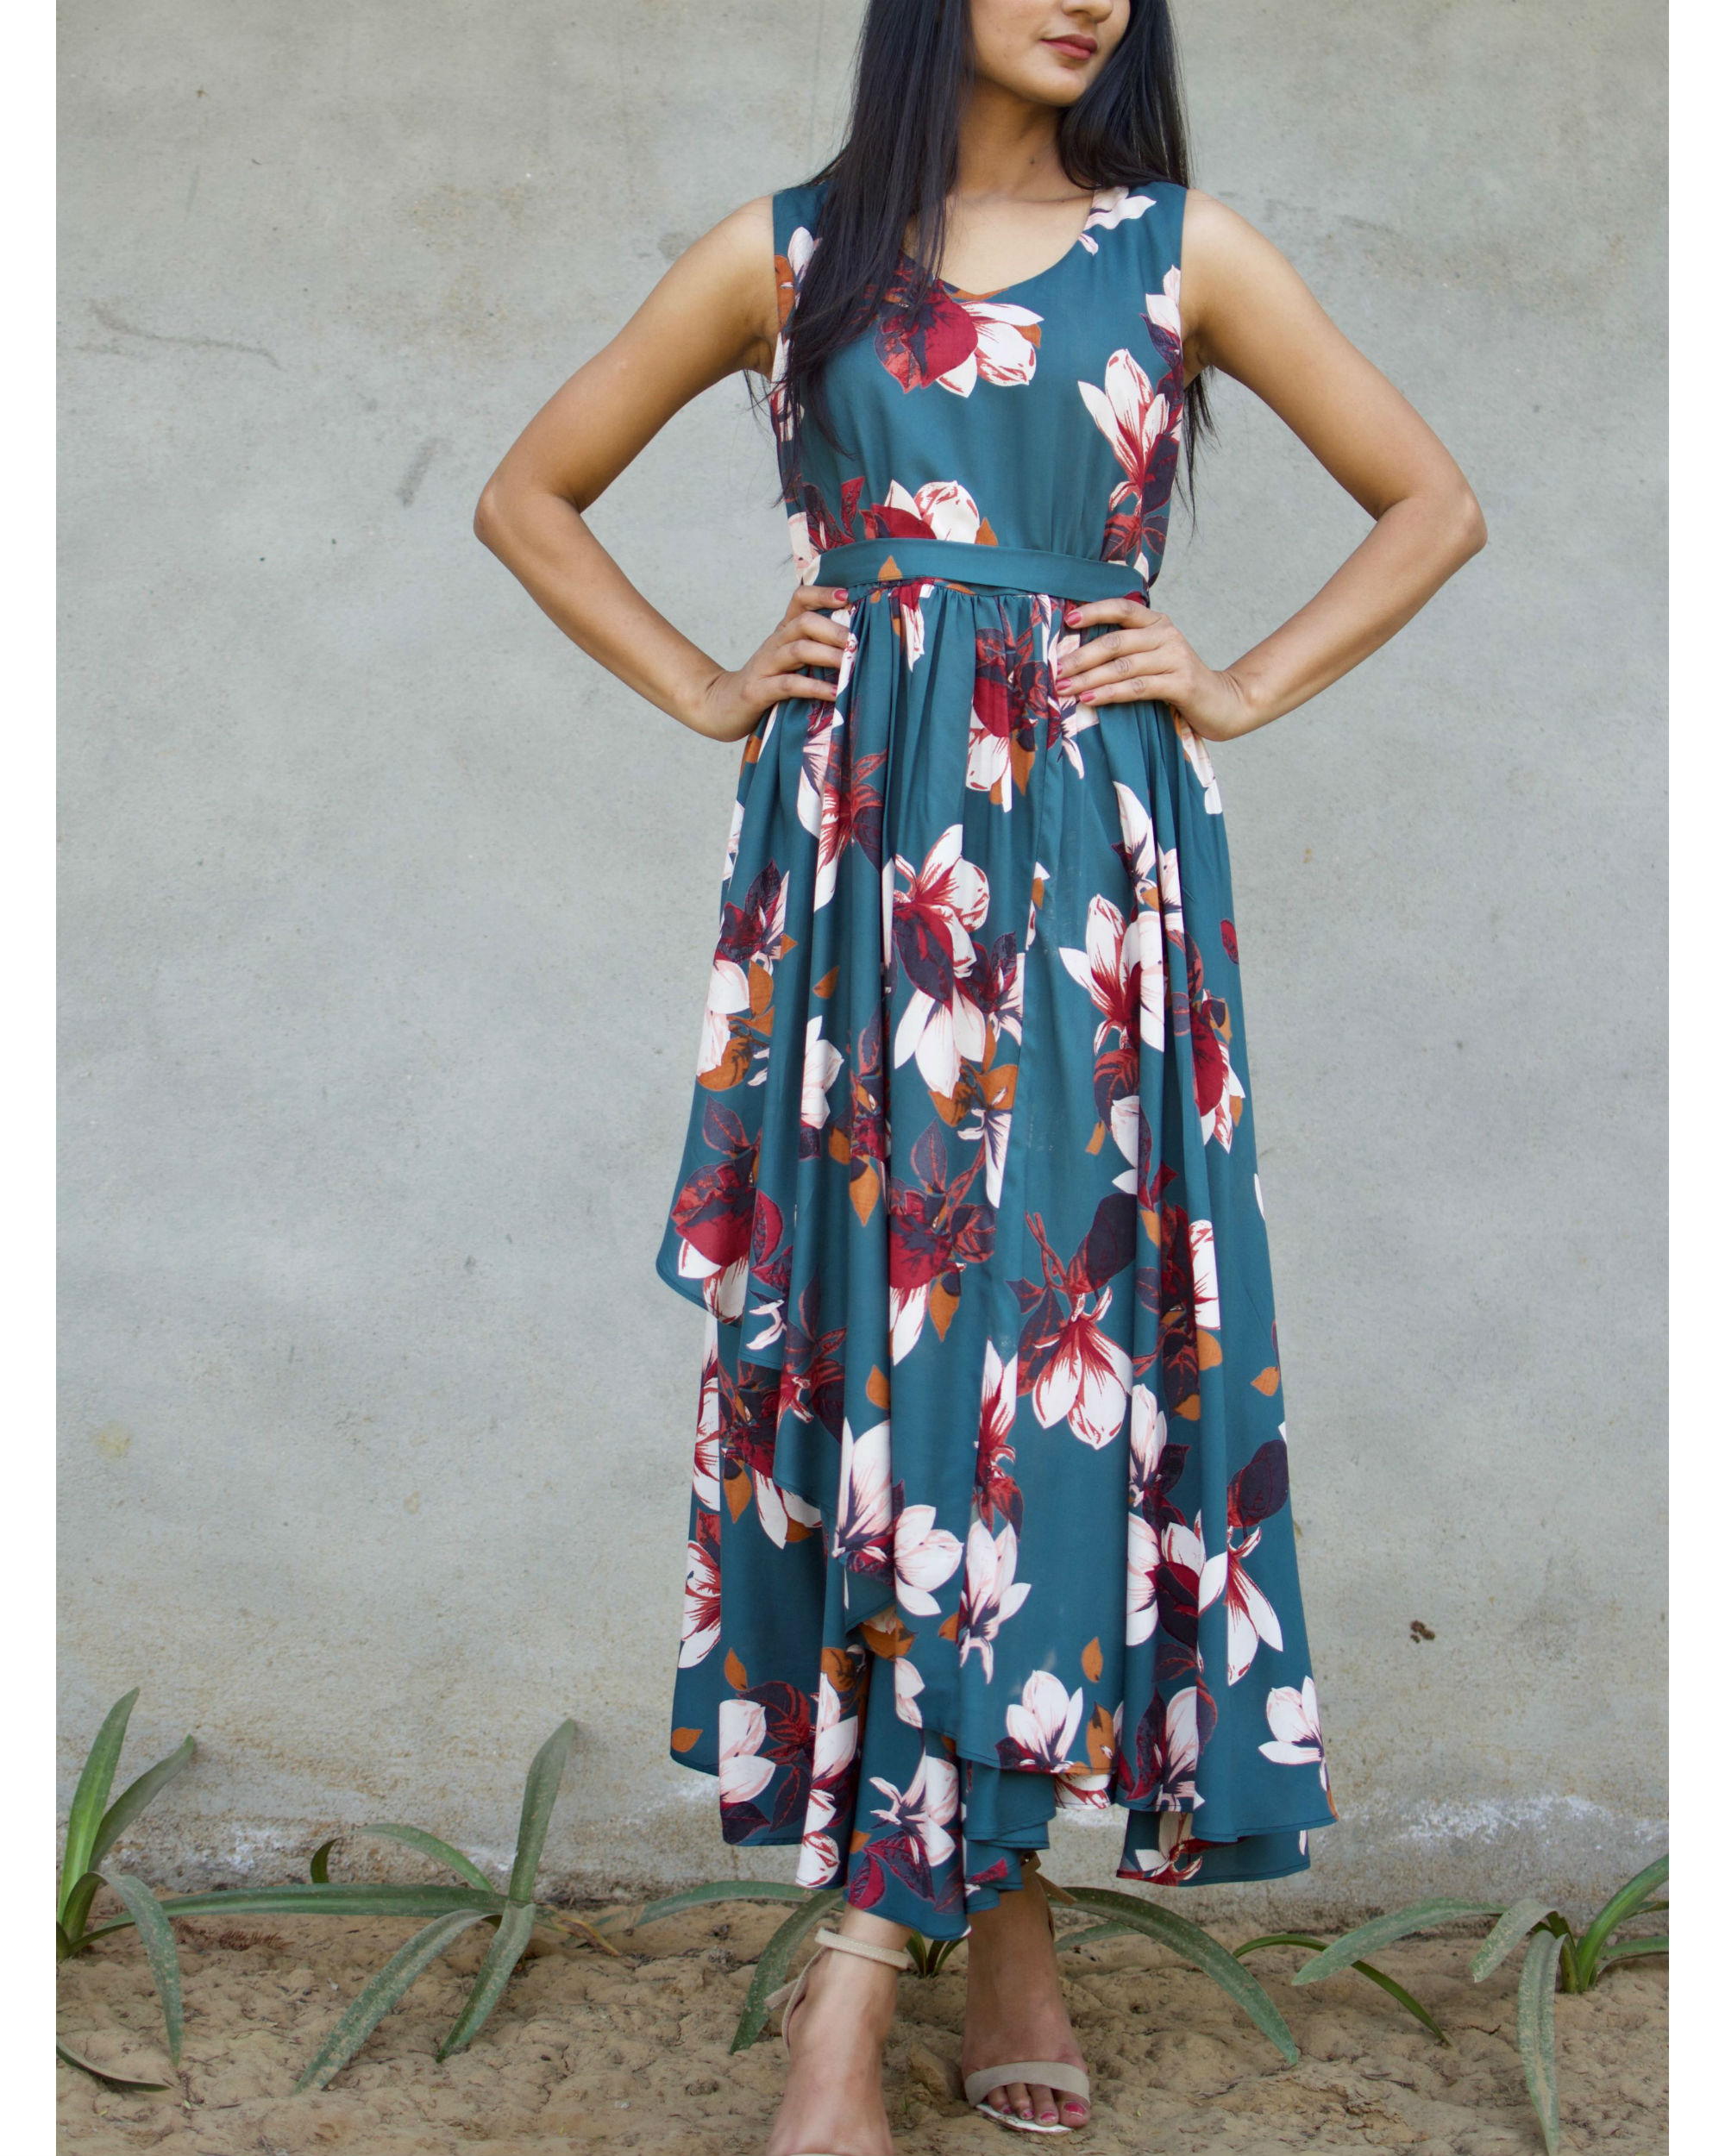 Deep Turquoise Floral Dress